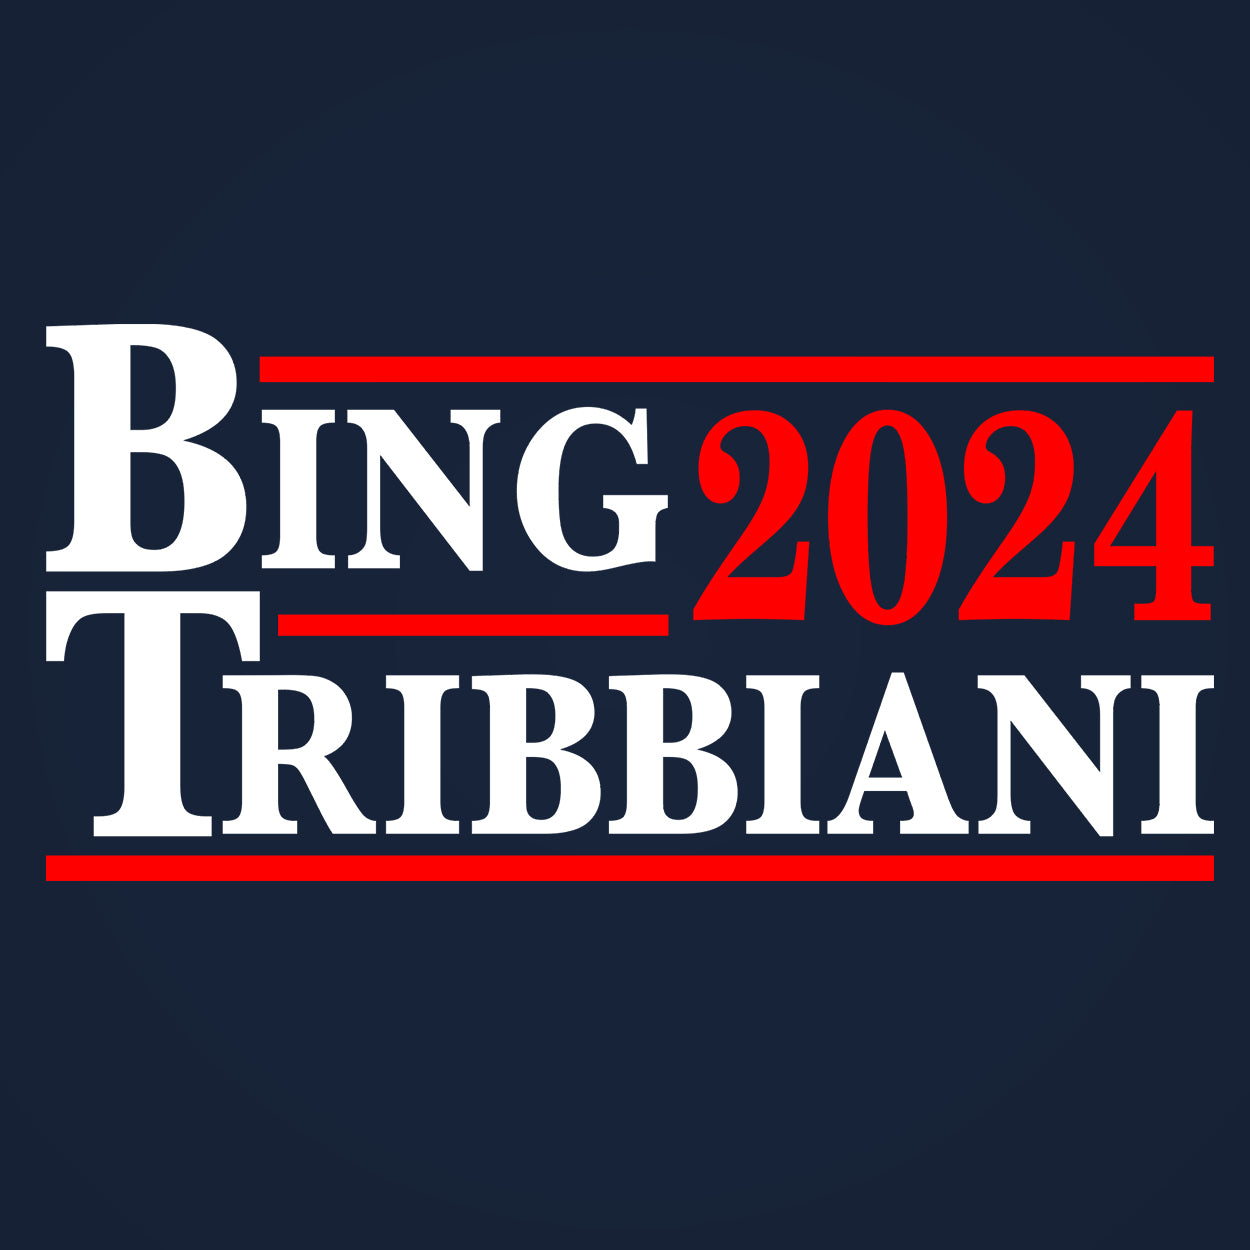 BING TRIBBIANI 2024 Election